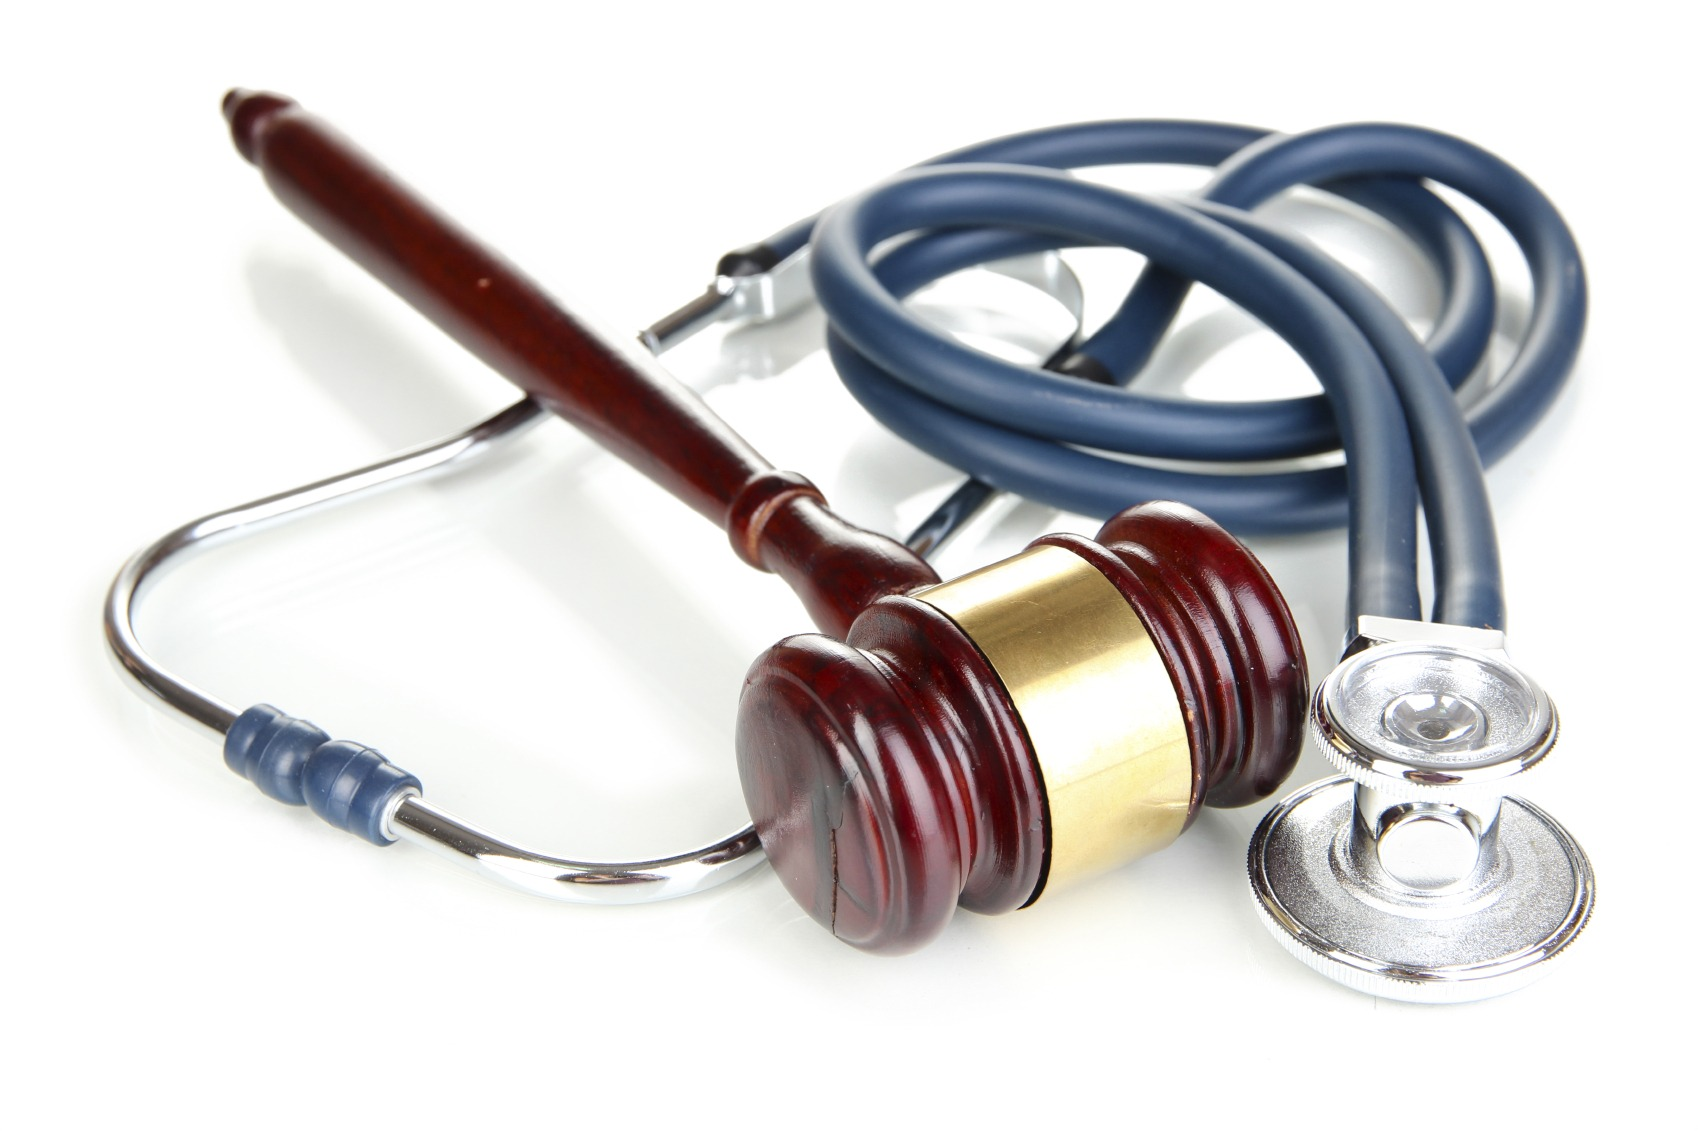 Failure To Diagnose Lung Cancer Malpractice Lawyer